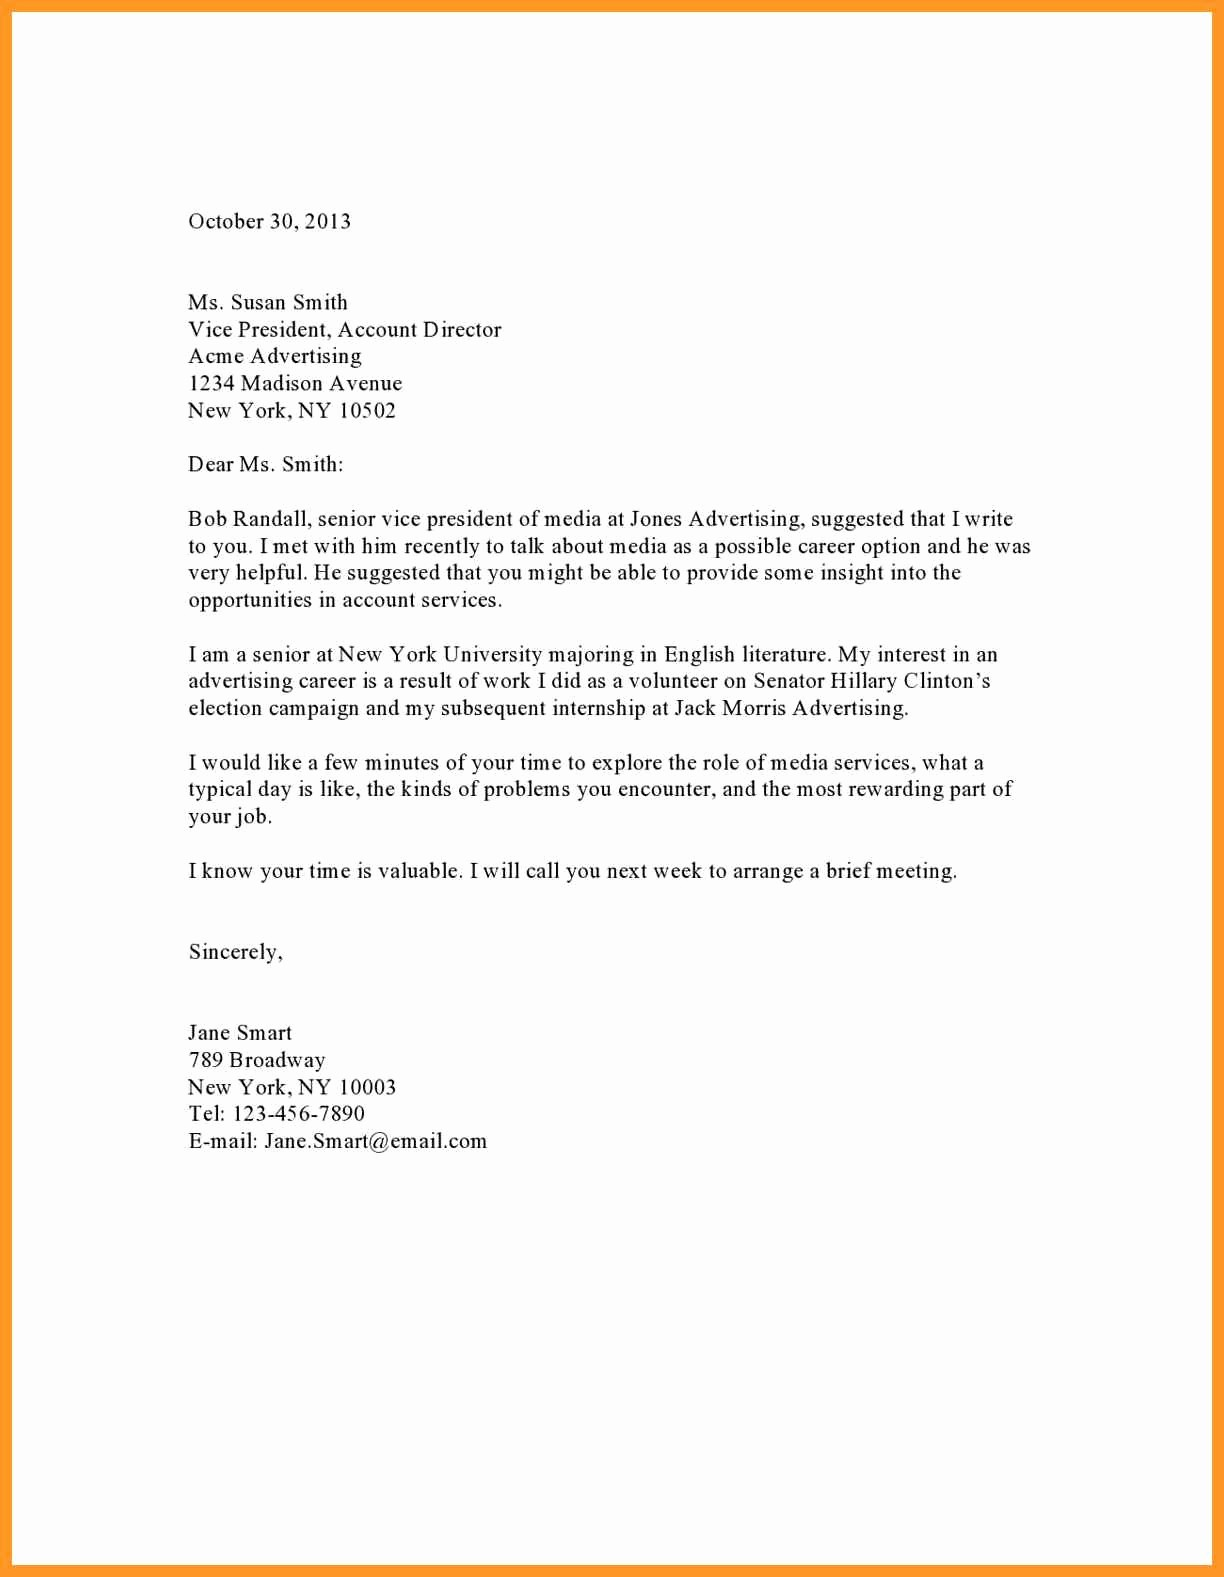 Simple Job Cover Letter Sample Fresh Simple Job Application Cover Letter